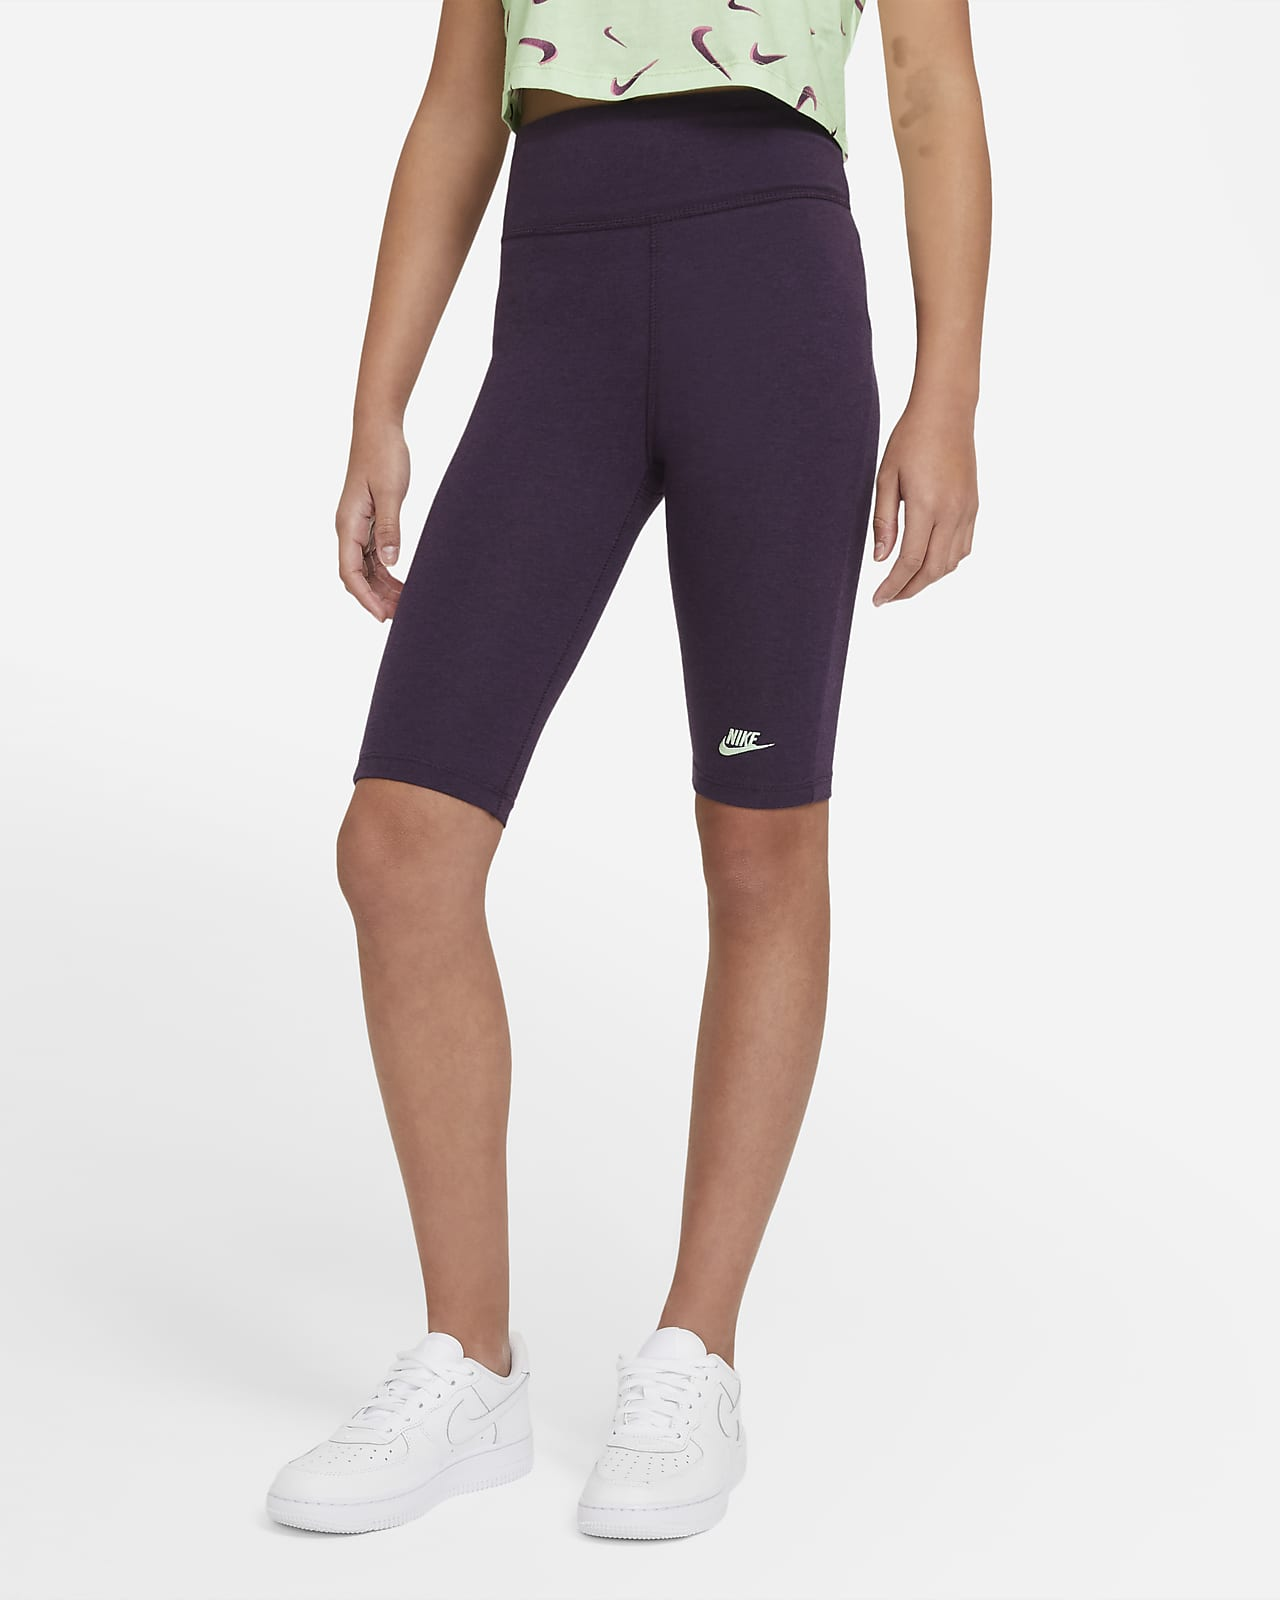 Nike Sportswear Big Kids' (Girls') Bike Shorts